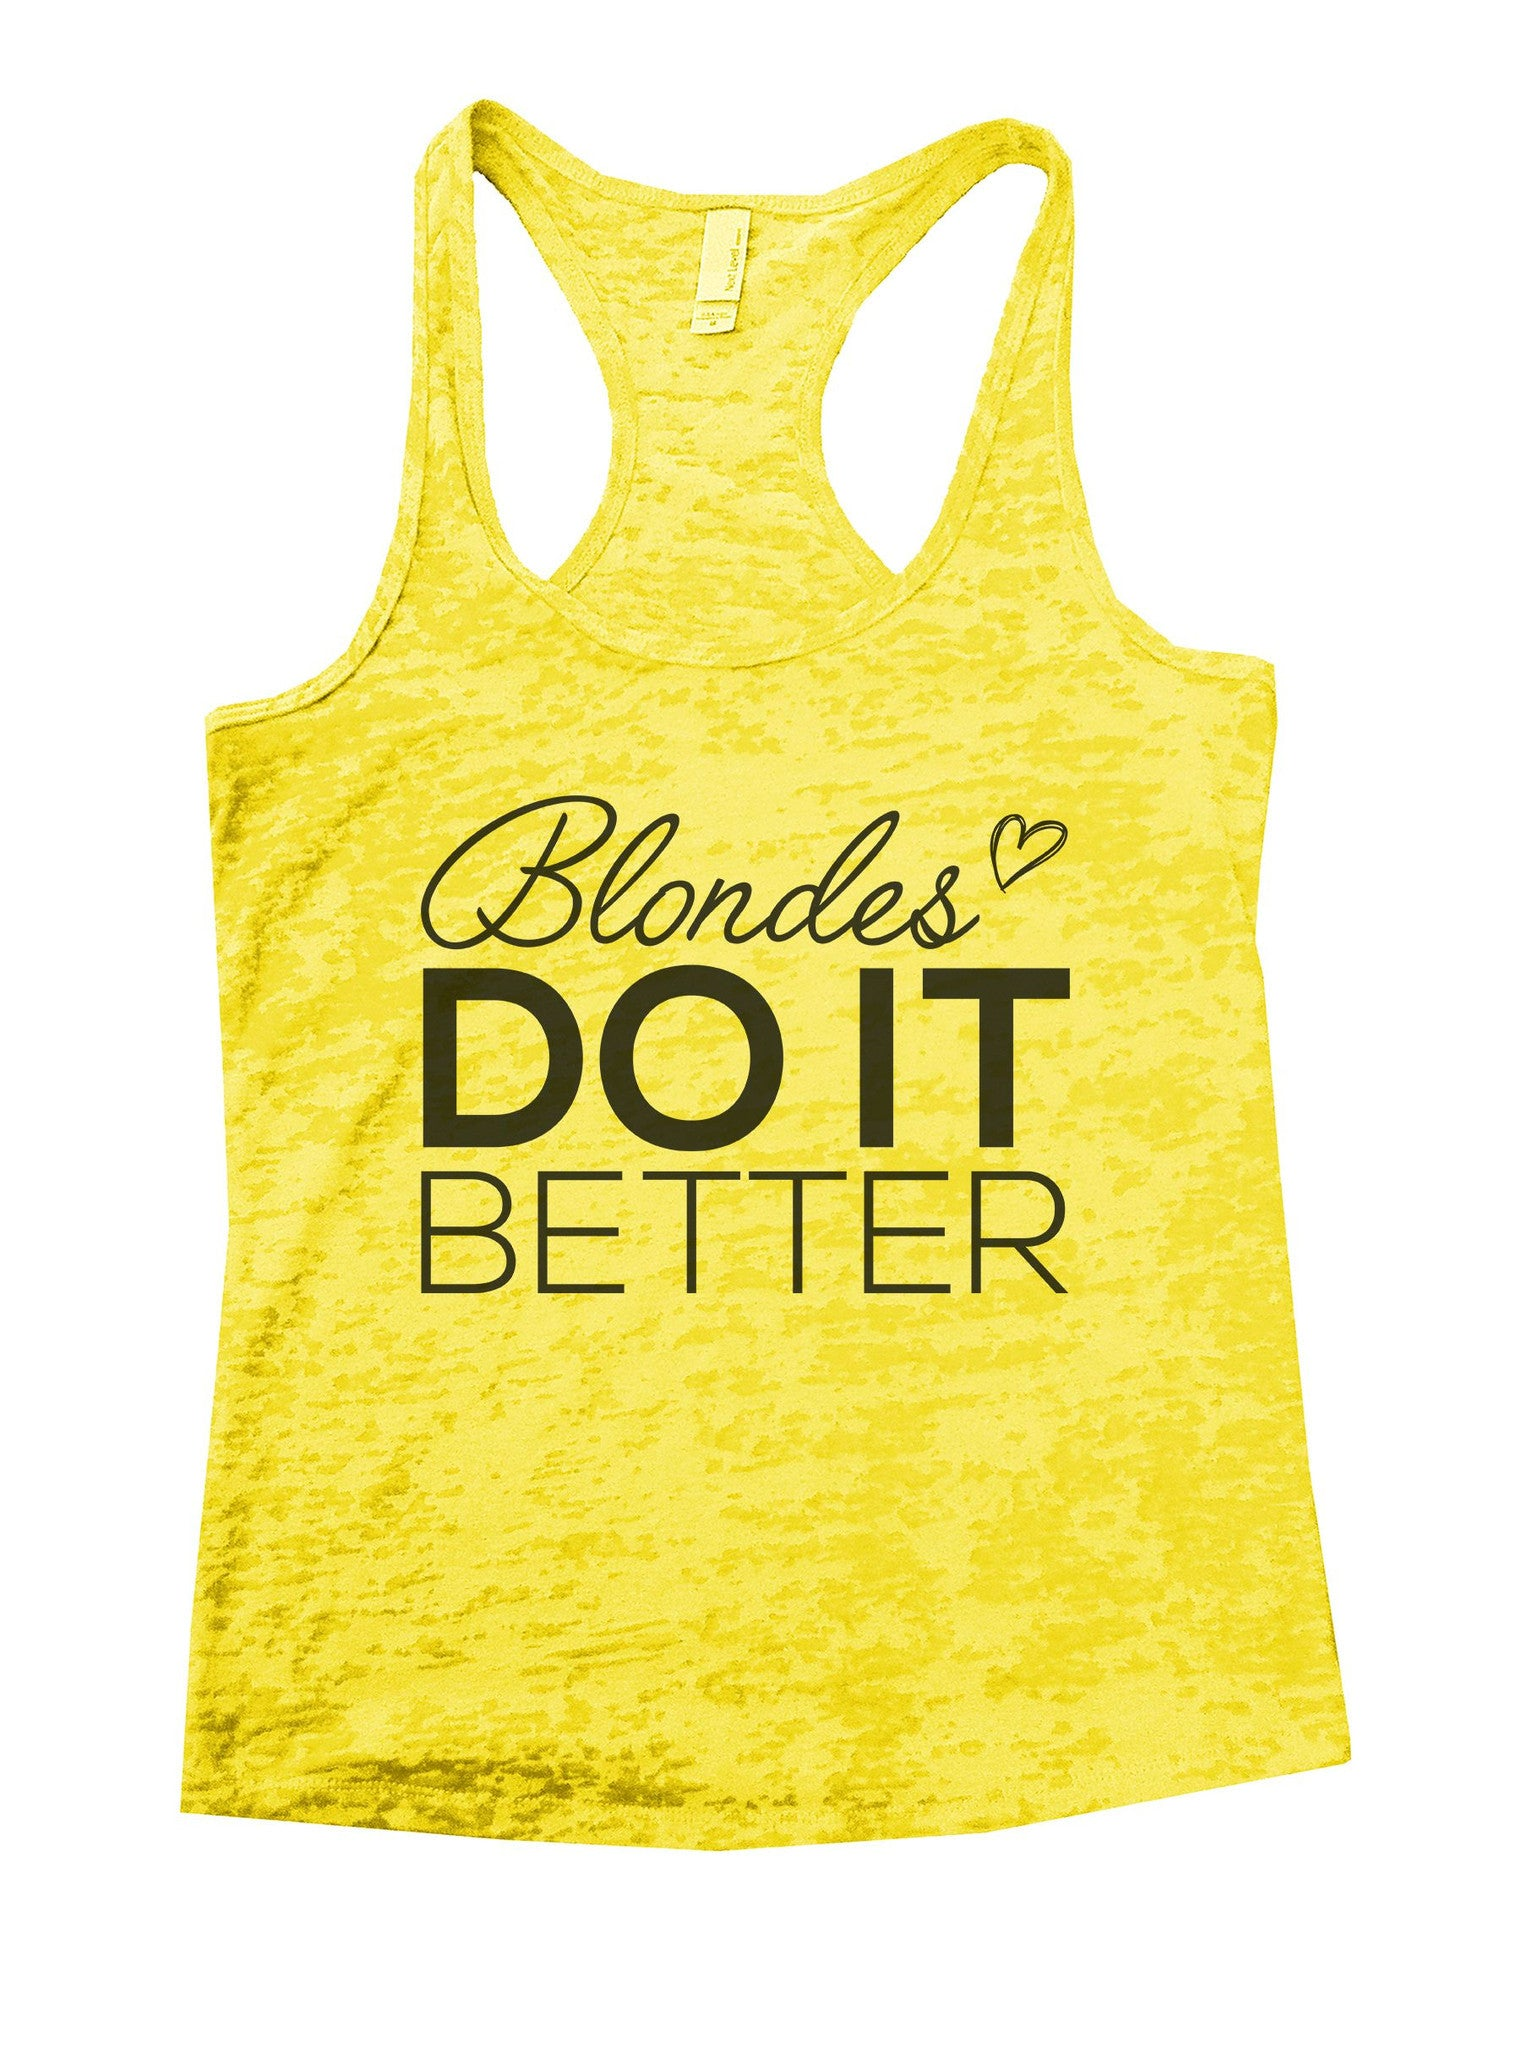 Blondes Do It Better Burnout Tank Top By BurnoutTankTops.com - 1030 - Funny Shirts Tank Tops Burnouts and Triblends  - 7